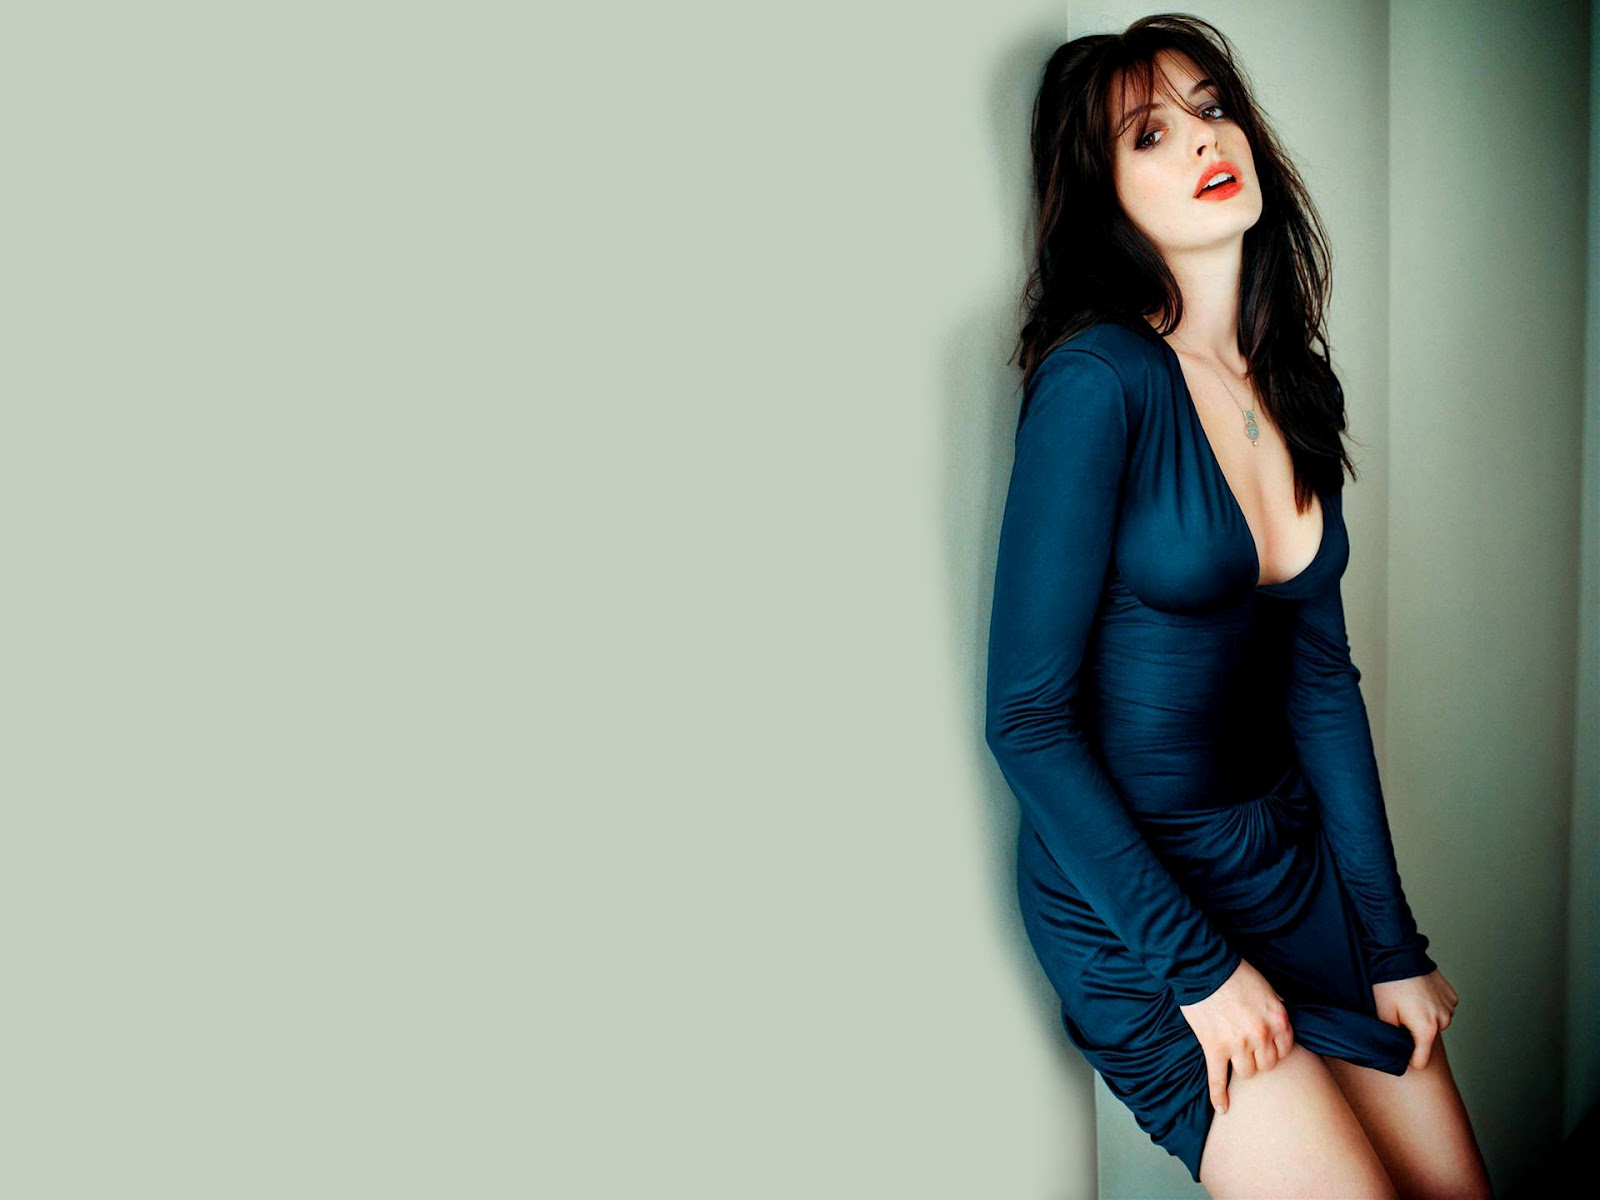 Anne hathaway high resolution wallpapers